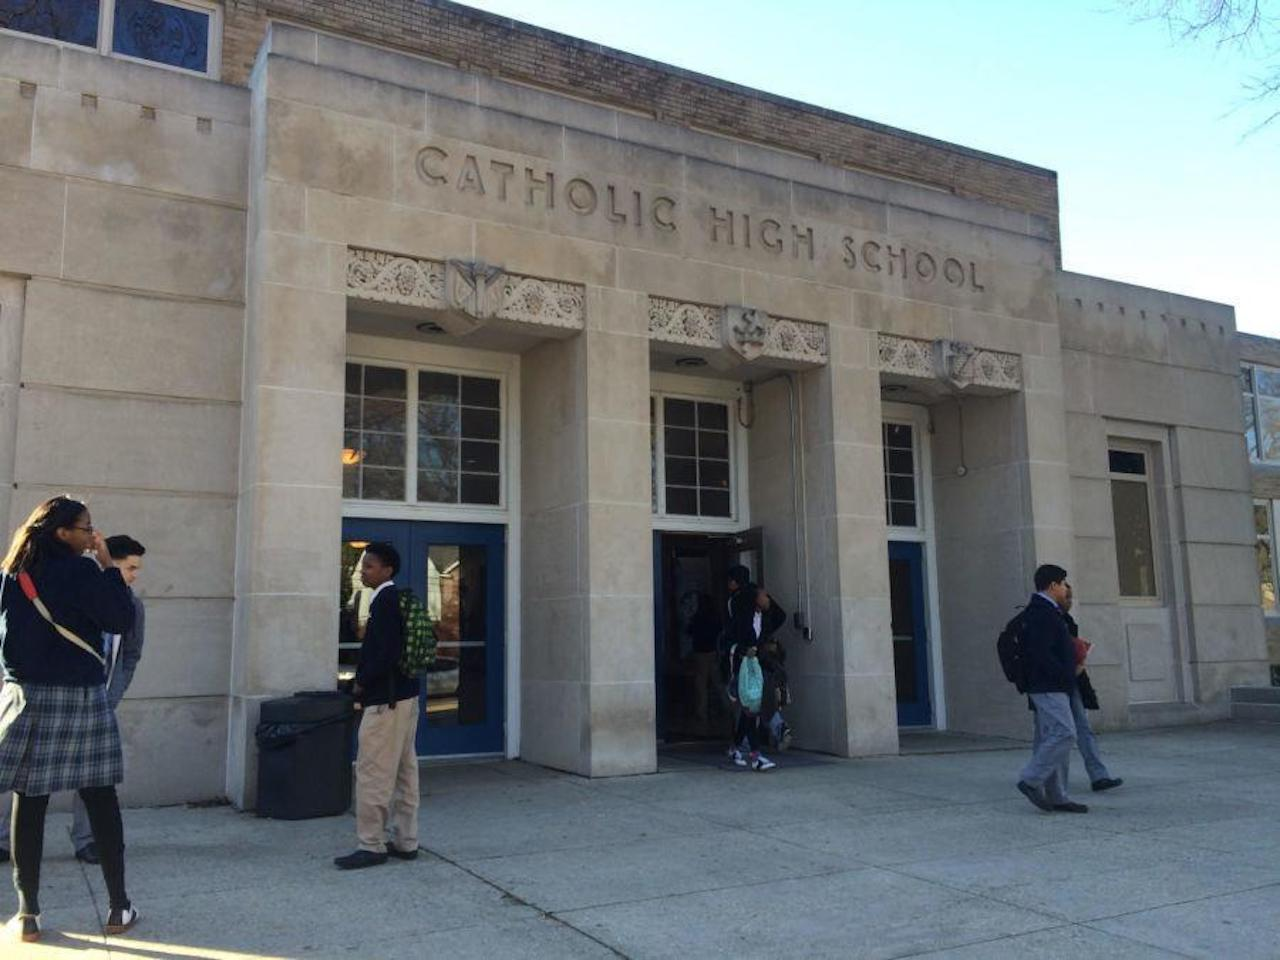 The Diocese of Memphis shocked educators when it announced that all schools in its Jubilee Network would close at the end of the 2018-19 school year. (Photo: Chalkbeat)